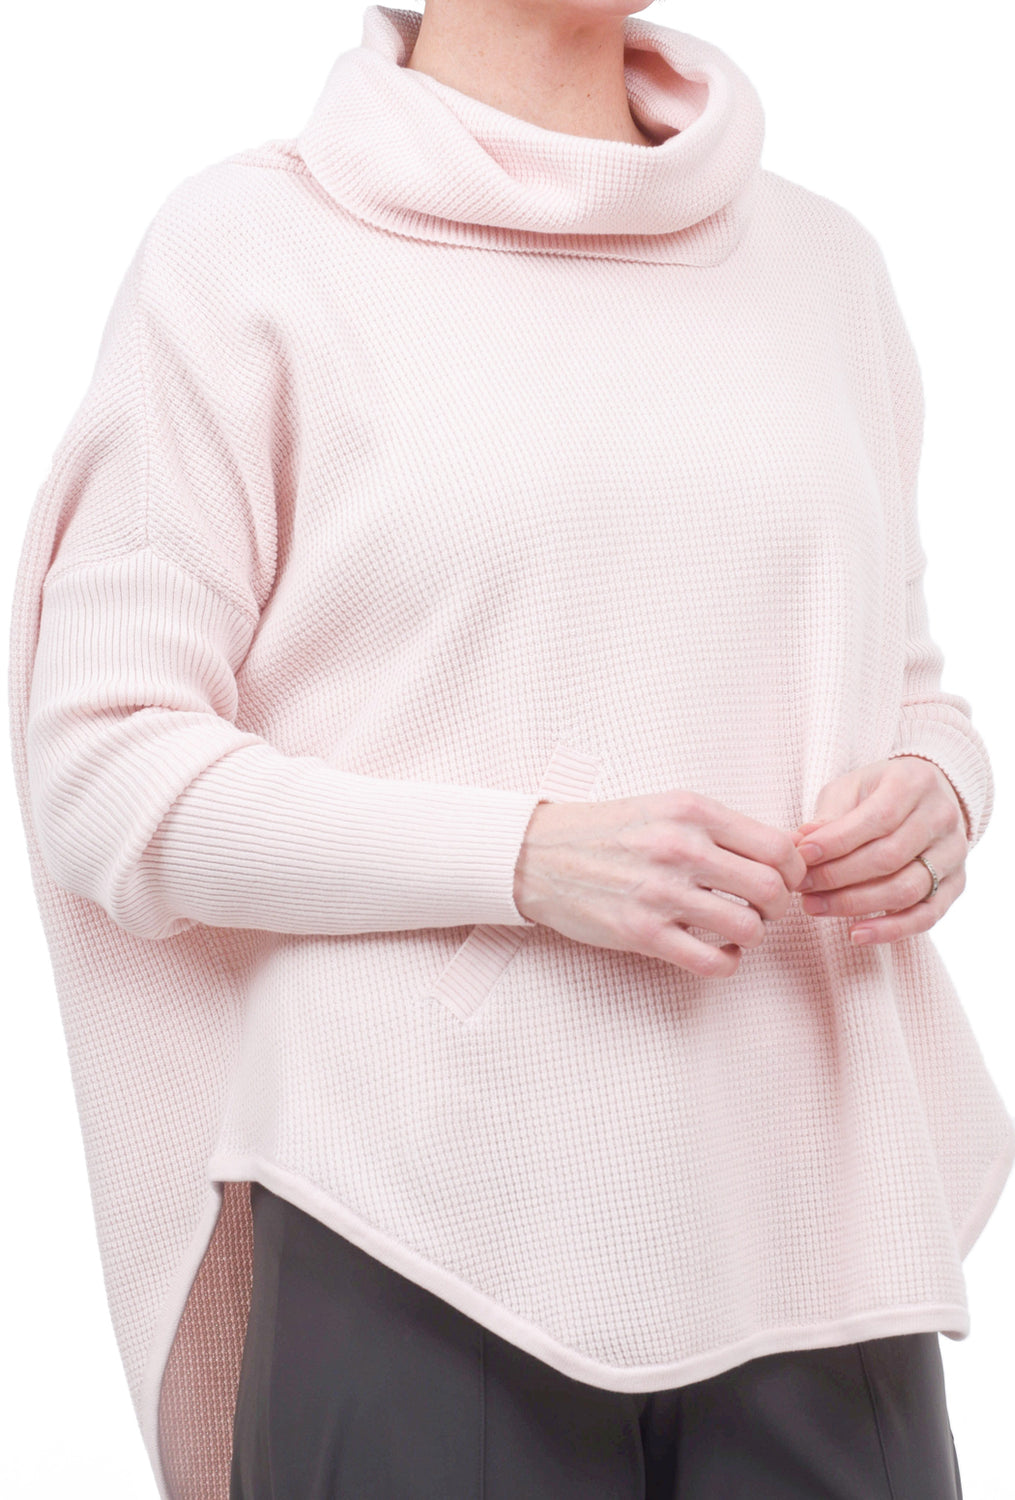 Planet Perfect Waffle Cowl, Blush Pink One Size Pink